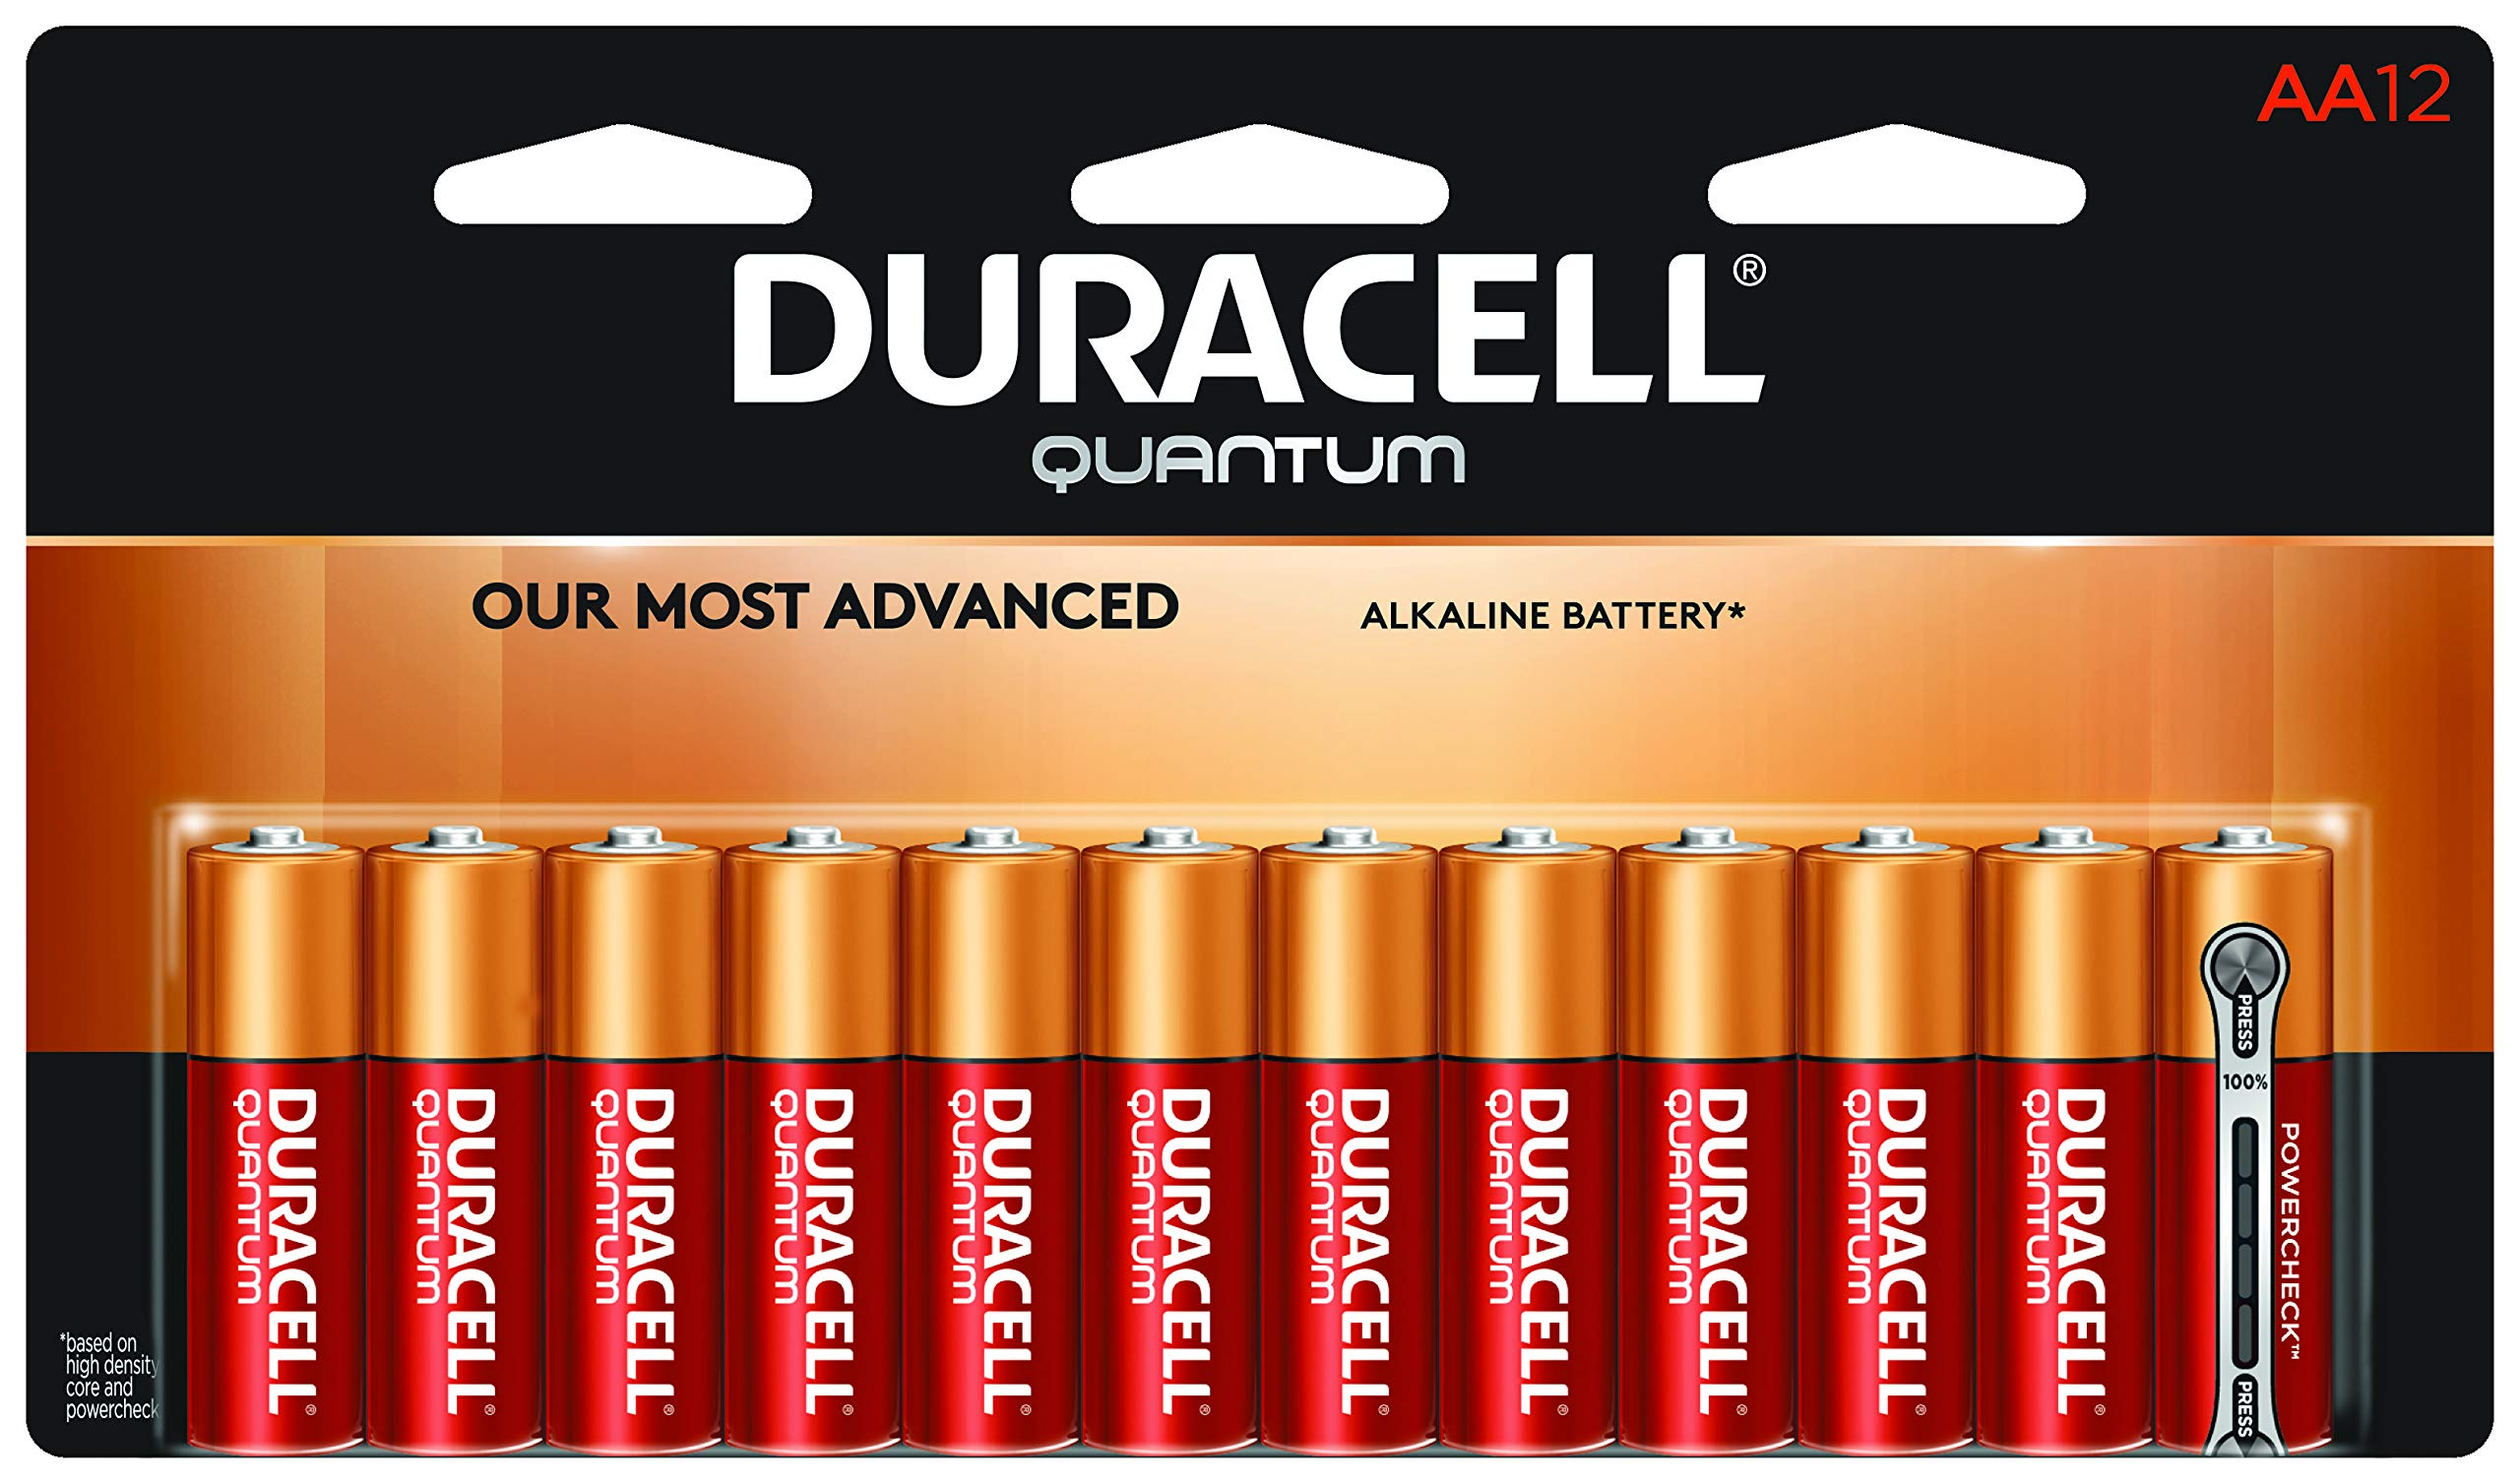 Duracell Quantum AA Alkaline Batteries - Long Lasting, All-Purpose Double A Battery for Household and Business - 12 Count